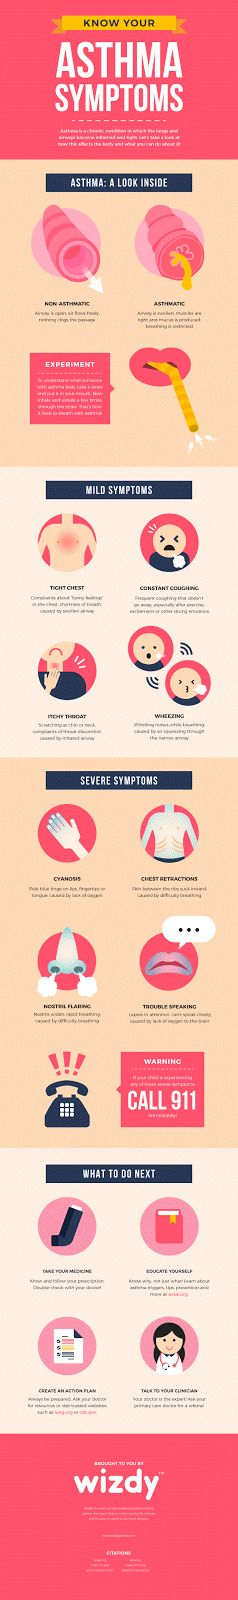 How to identify asthma symptoms #infographics #asthma #symptoms #children…